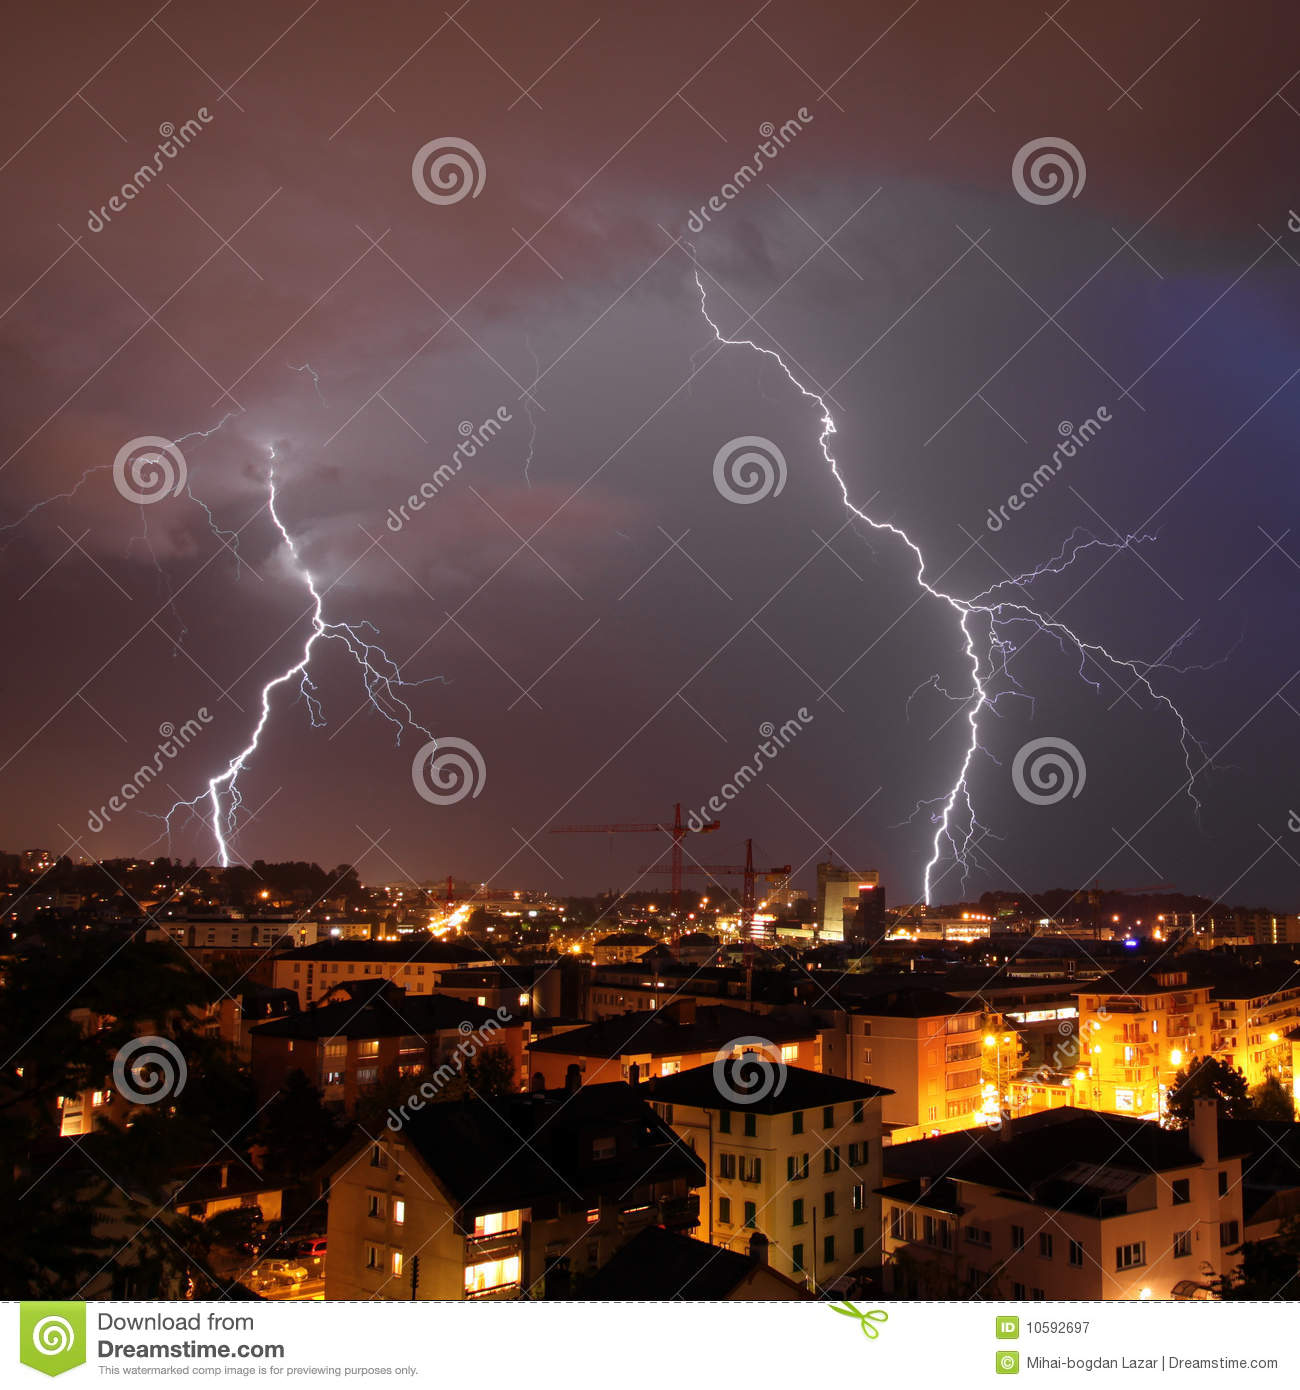 Urban lightning strike